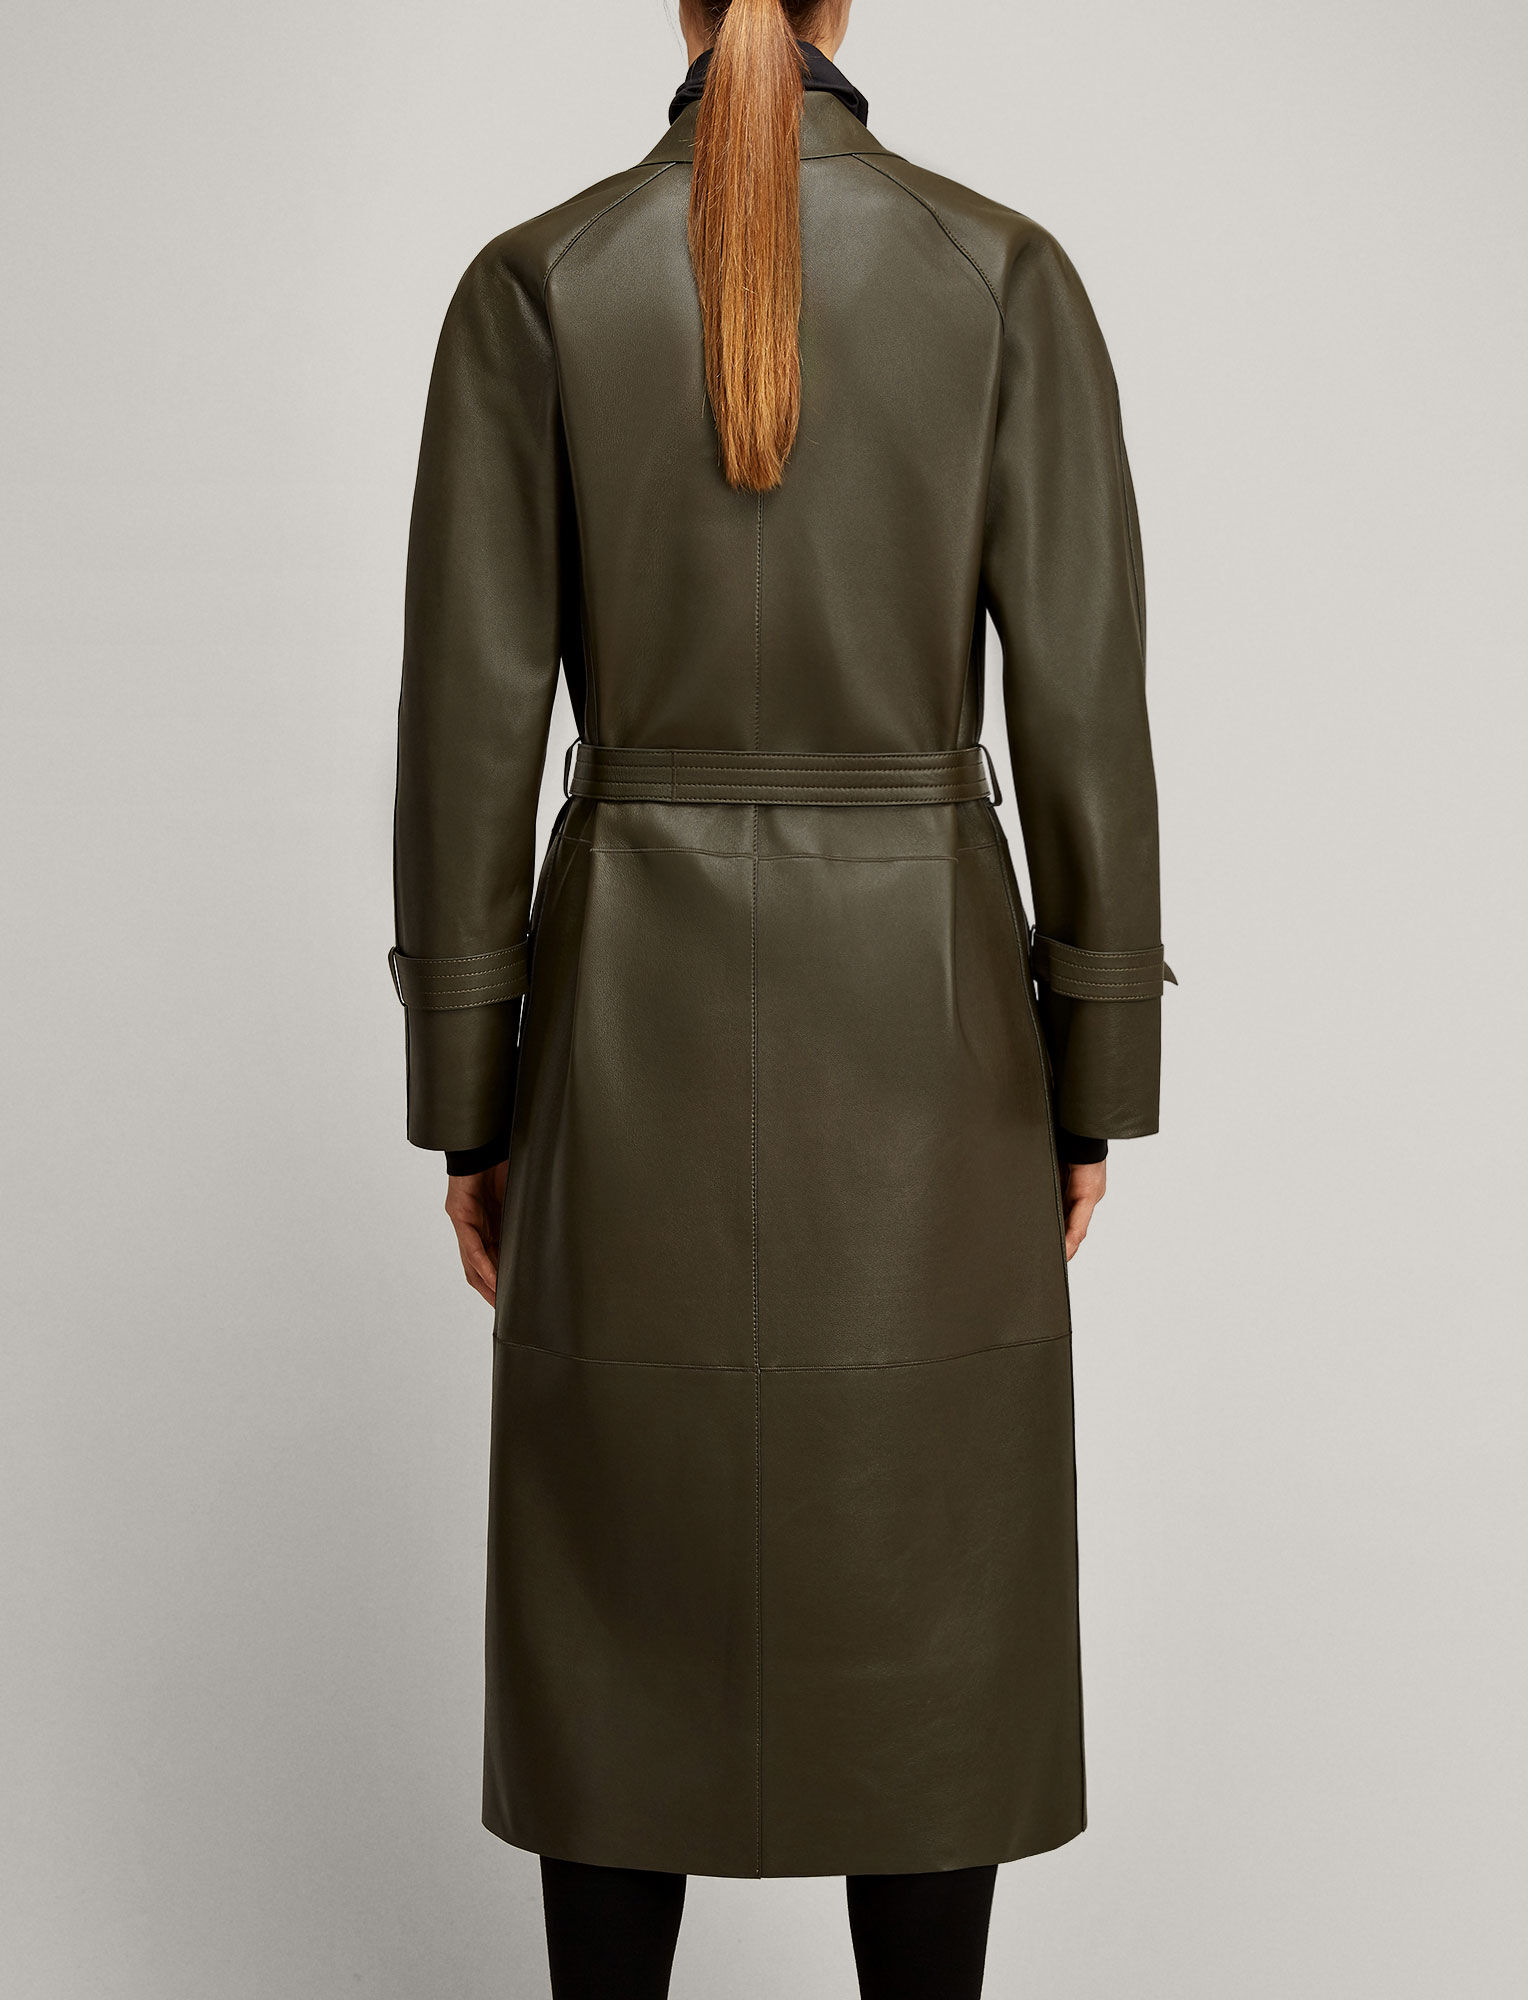 Joseph, Solferino Double Leather Coat, in KHAKI